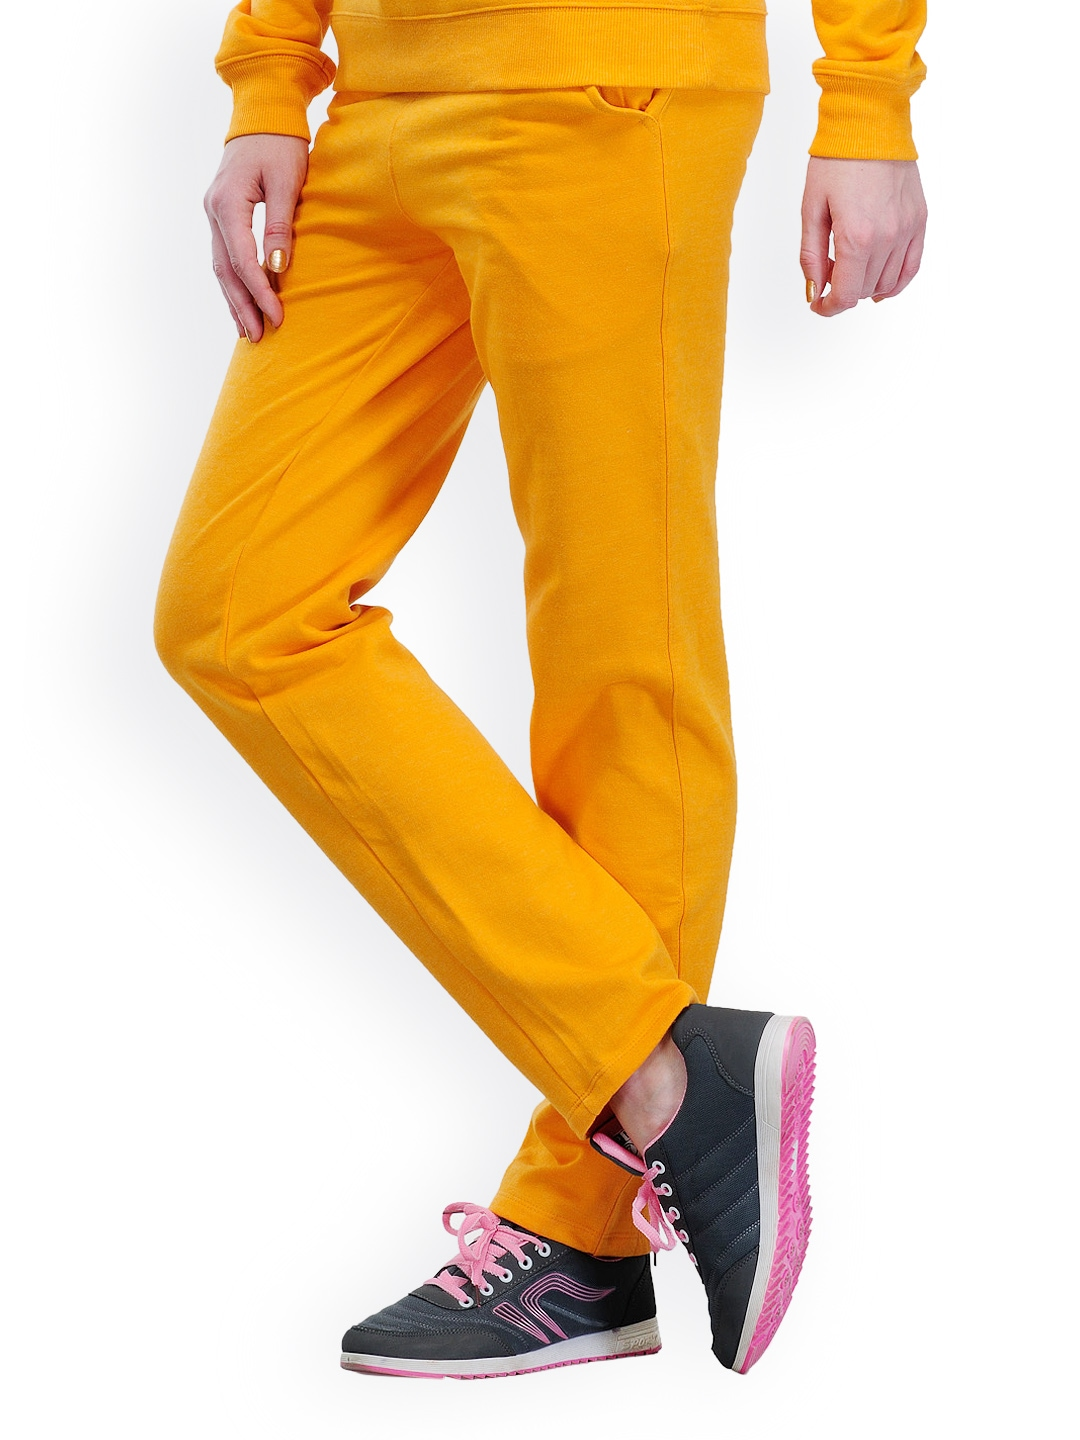 Awesome Home Womens Jeans Terri Jeans In Mustard Yellow